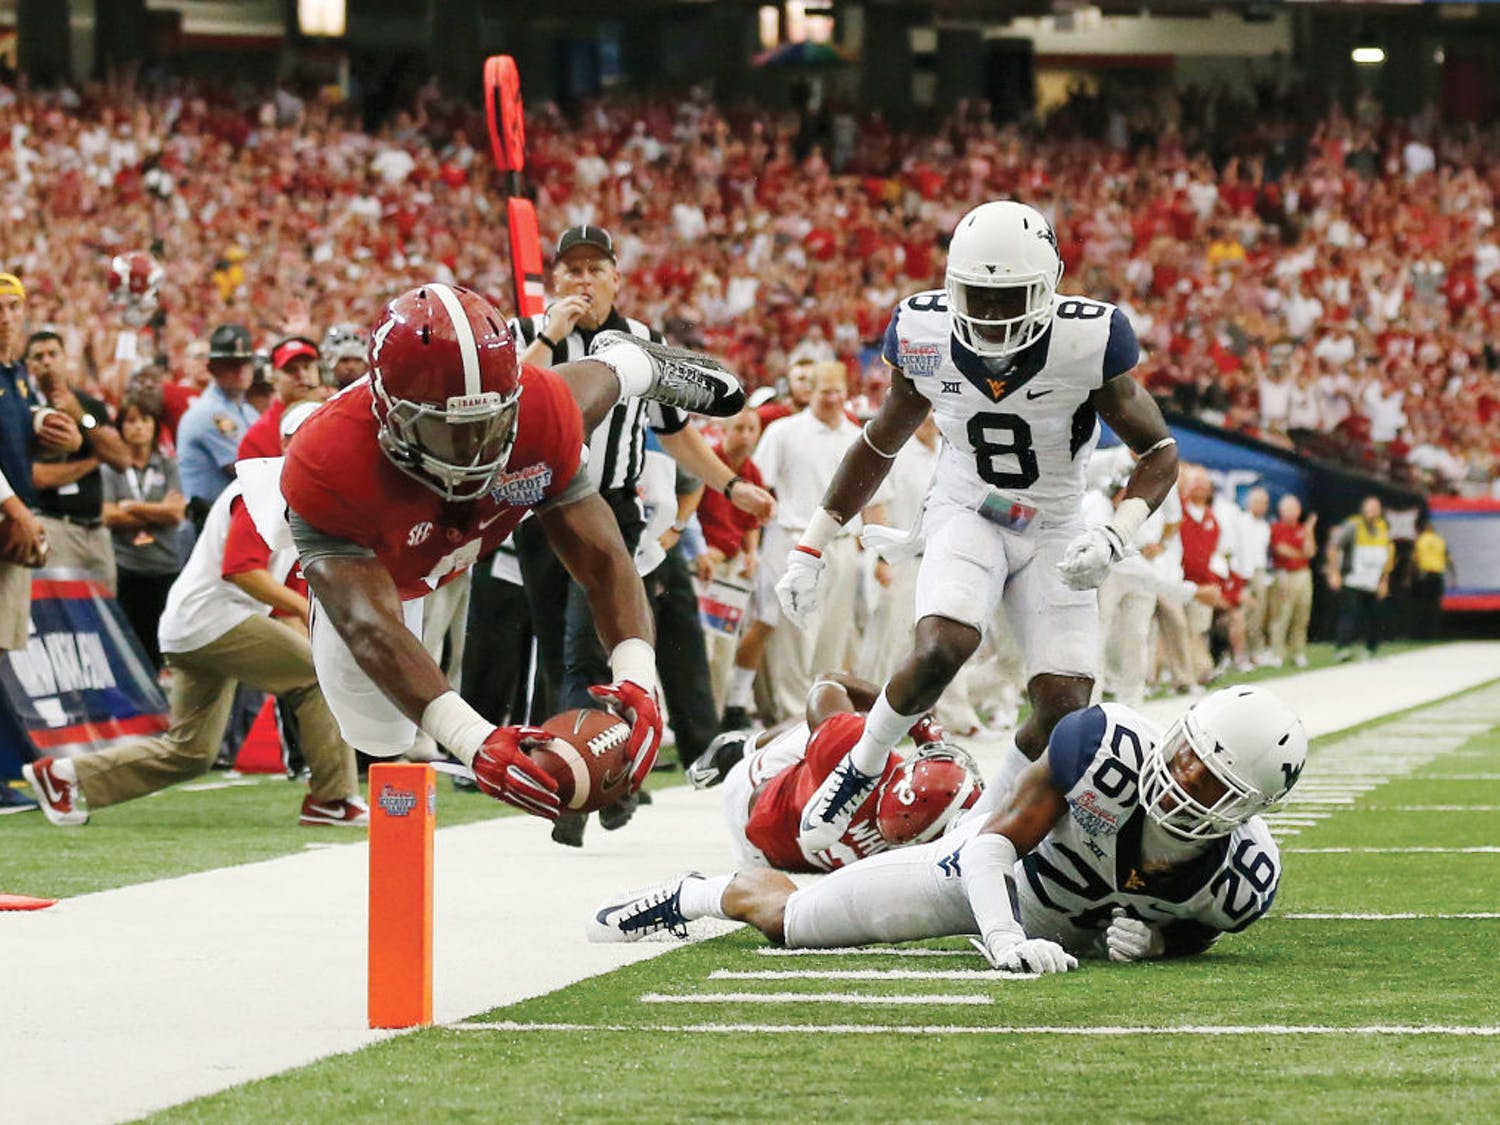 Alabama running back T.J. Yeldon (4) dives into the end zone for a touchdown as West Virginia's Travis Bell (26) and Karl Joseph (8) defend in the first half of an NCAA college football game Saturday, Aug. 30, 2014, in Atlanta.